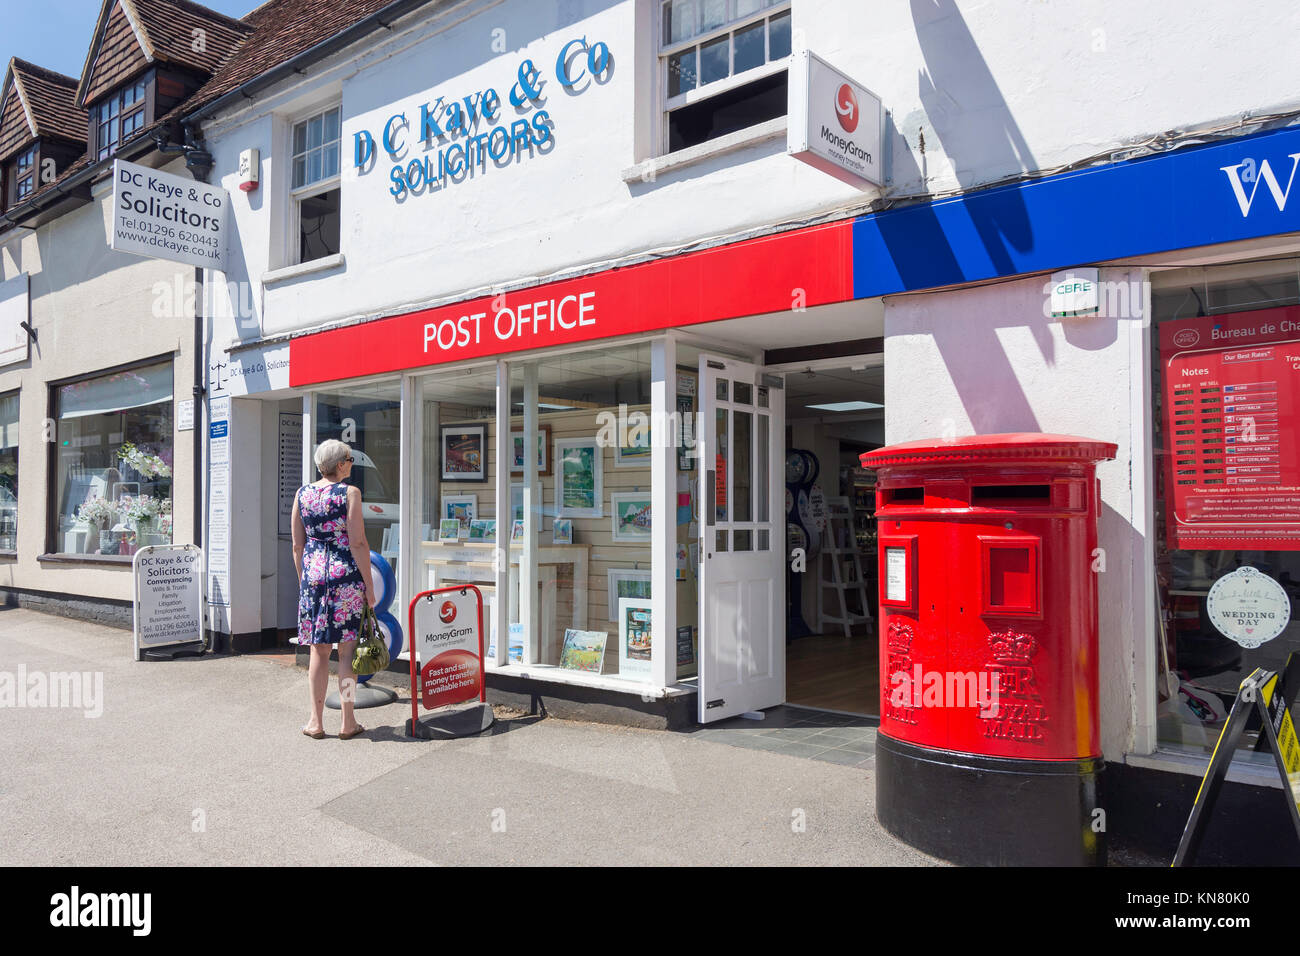 Post Office in W.H.Smith newsagents, High Street, Wendover, Buckinghamshire, England, United Kingdom Stock Photo